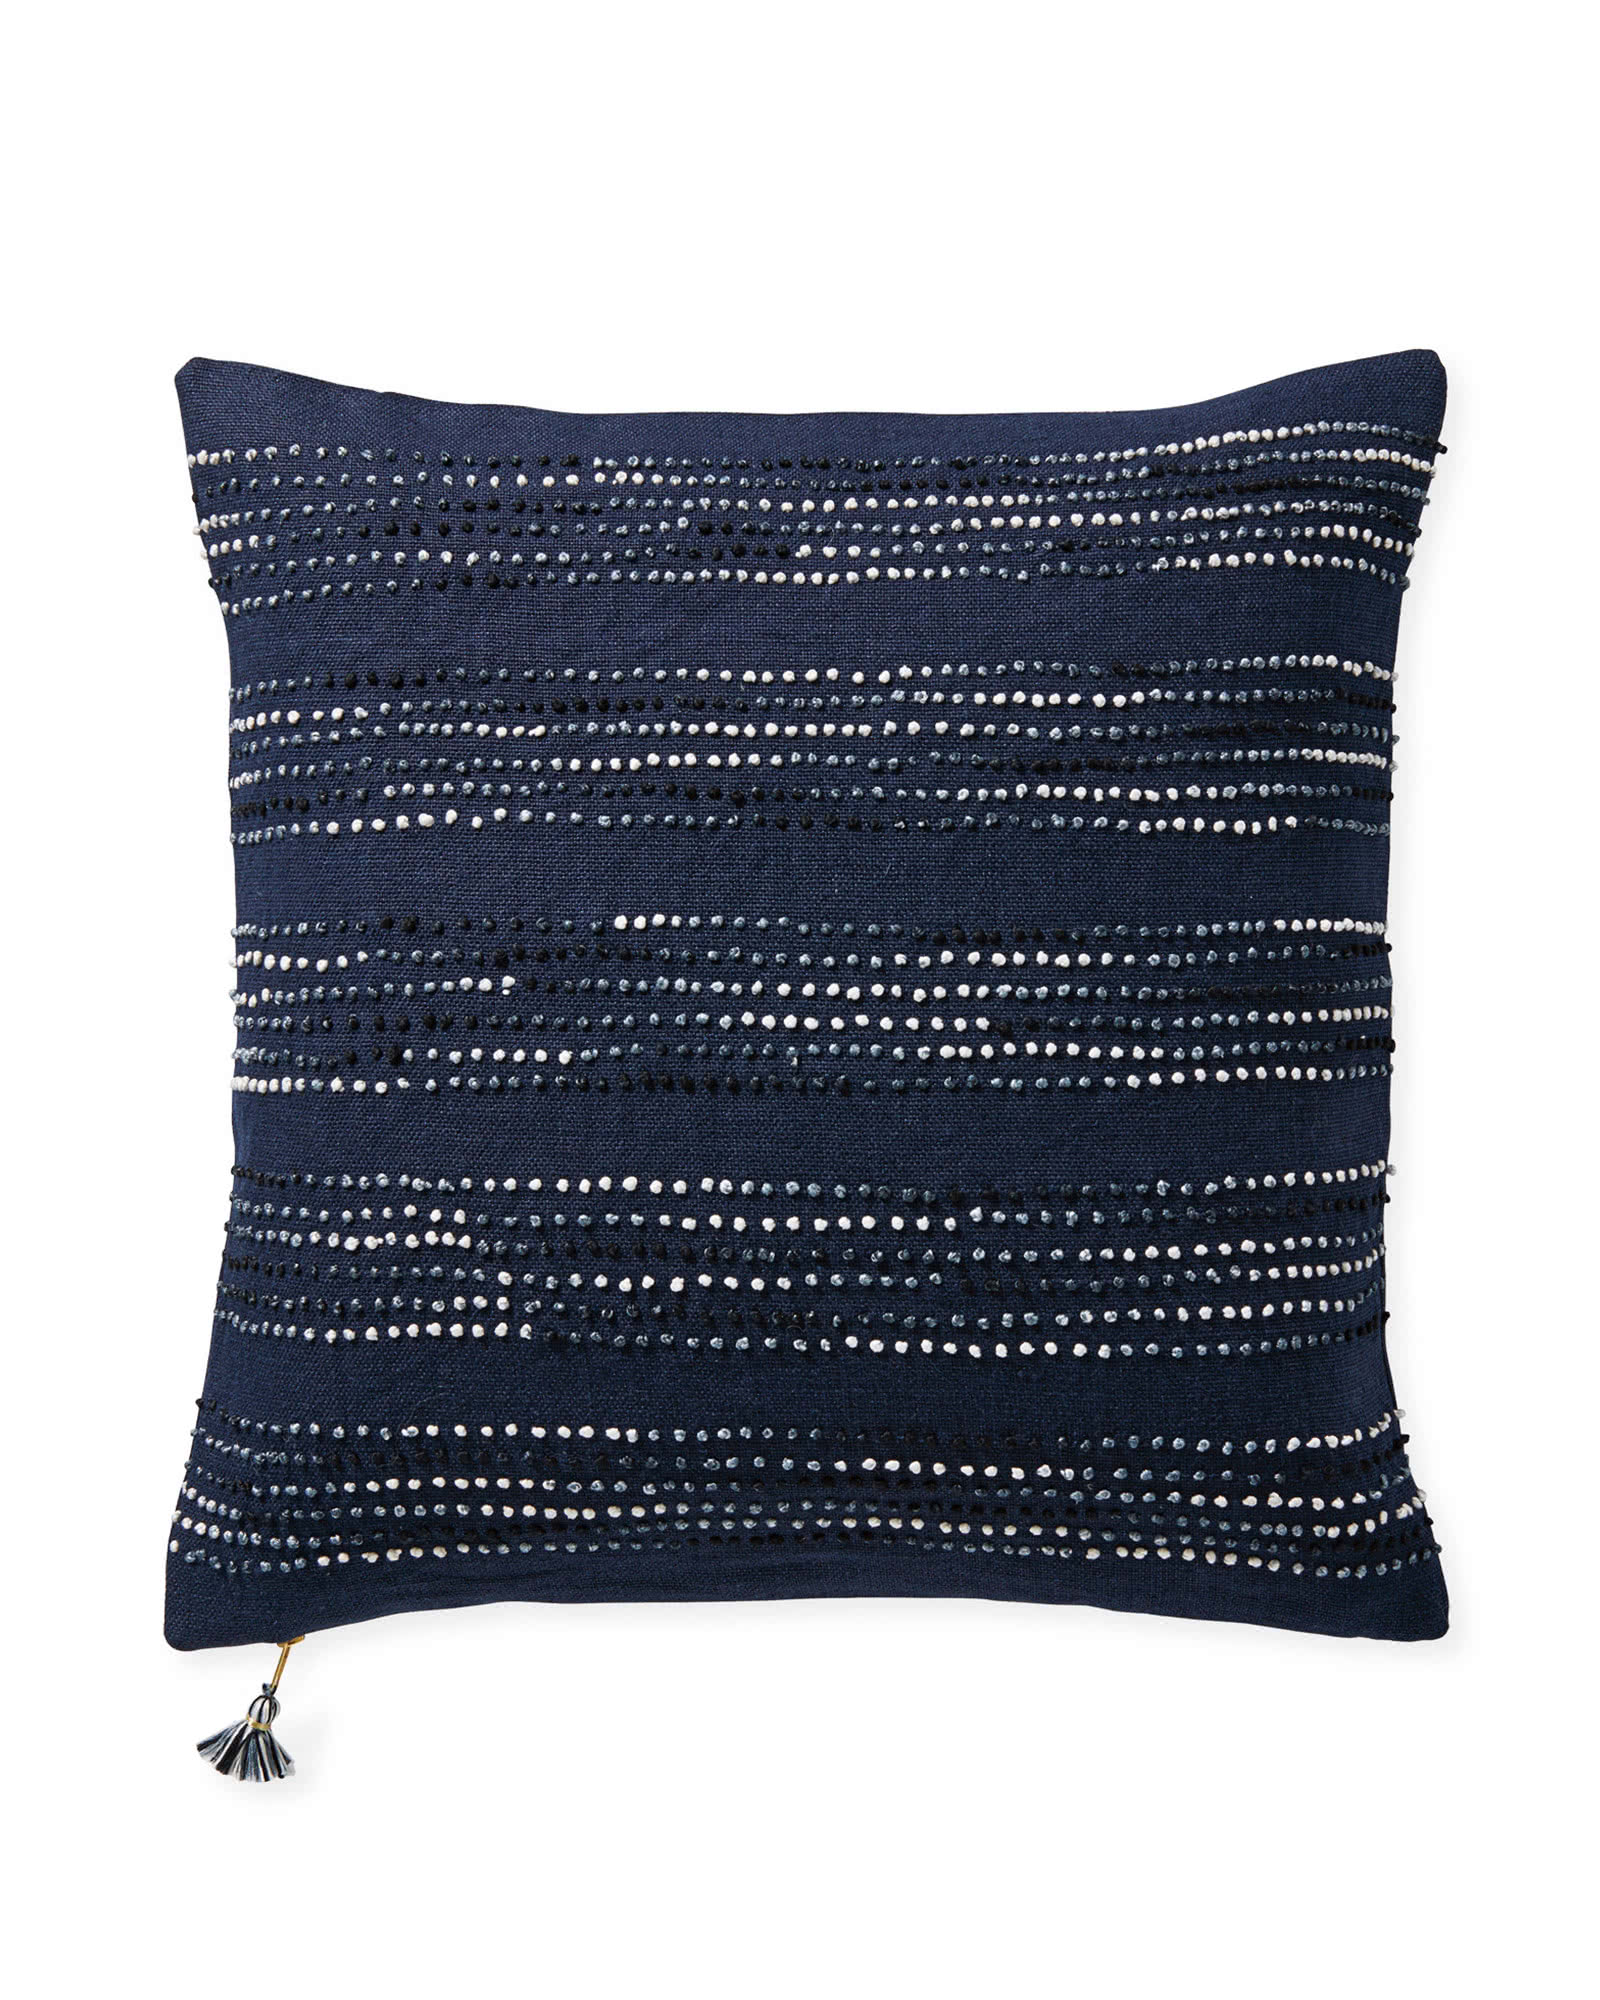 Pryce Pillow Cover, Navy